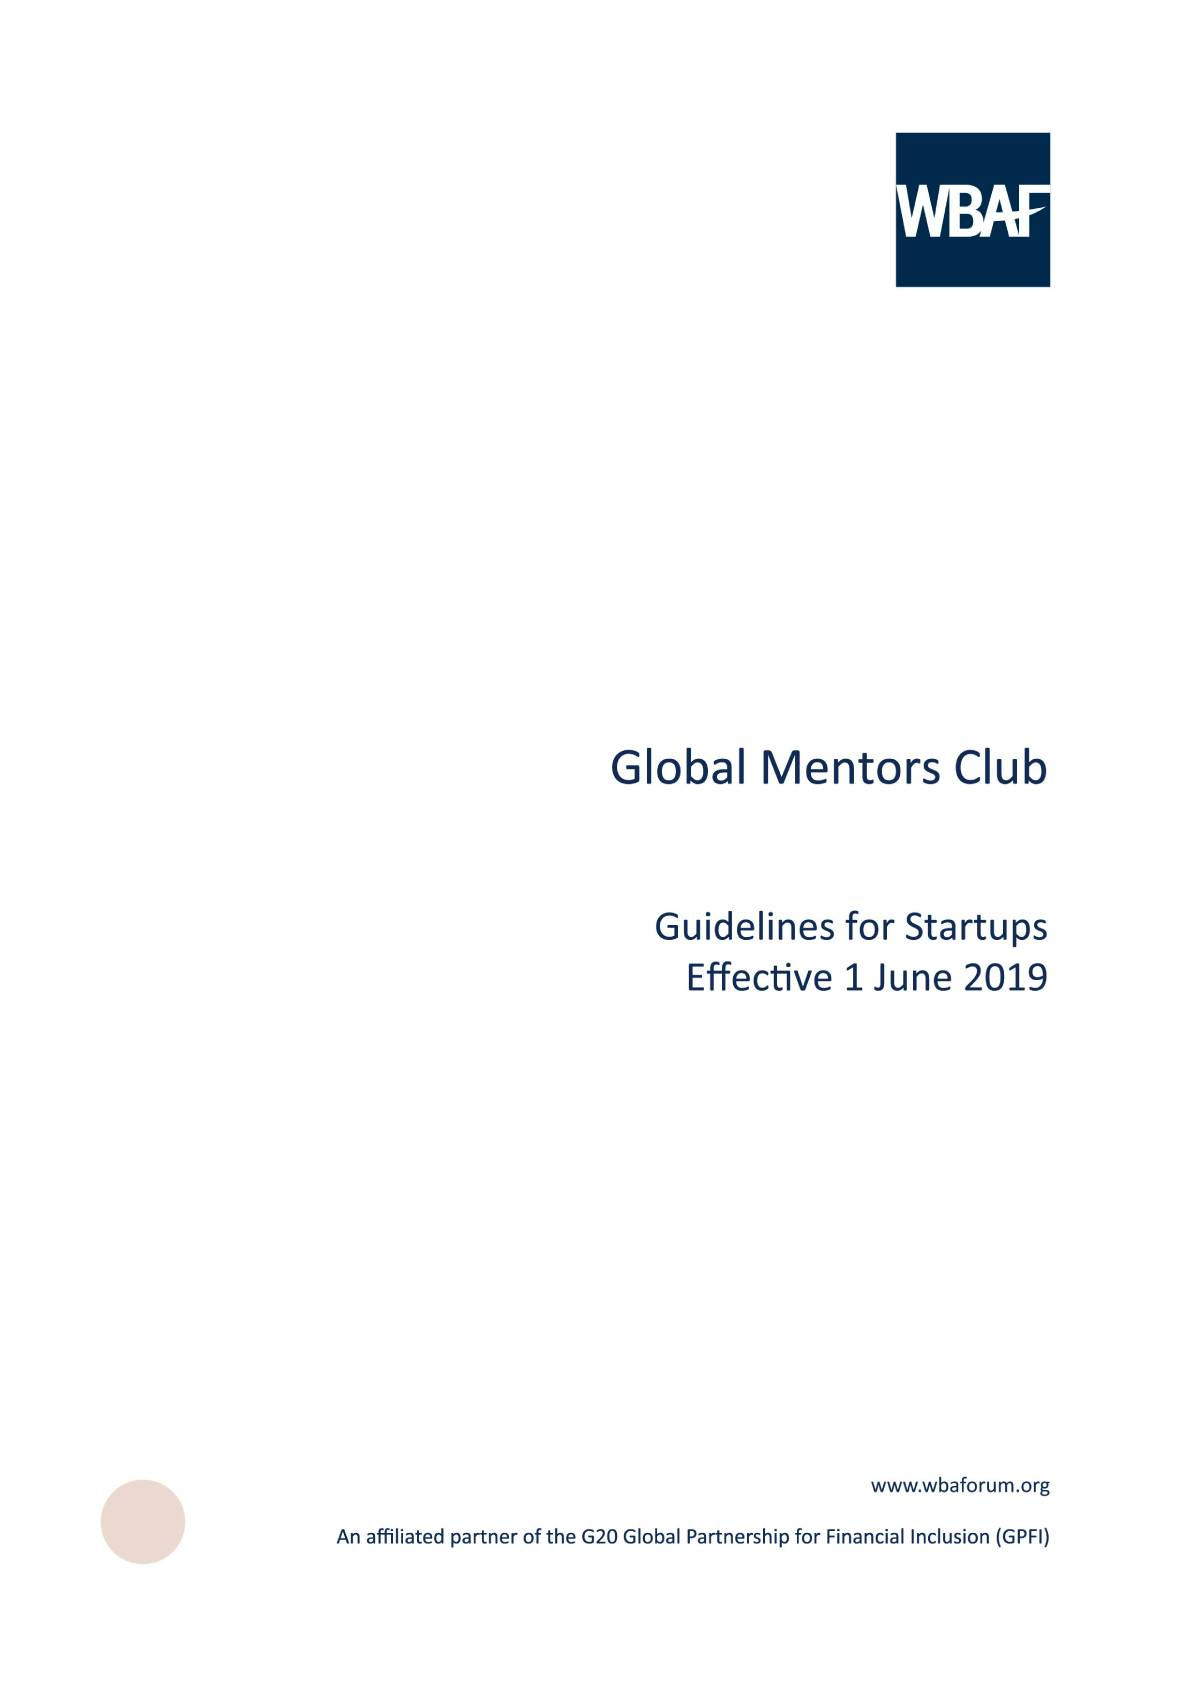 Global Mentor Club - Guidelines for Startups